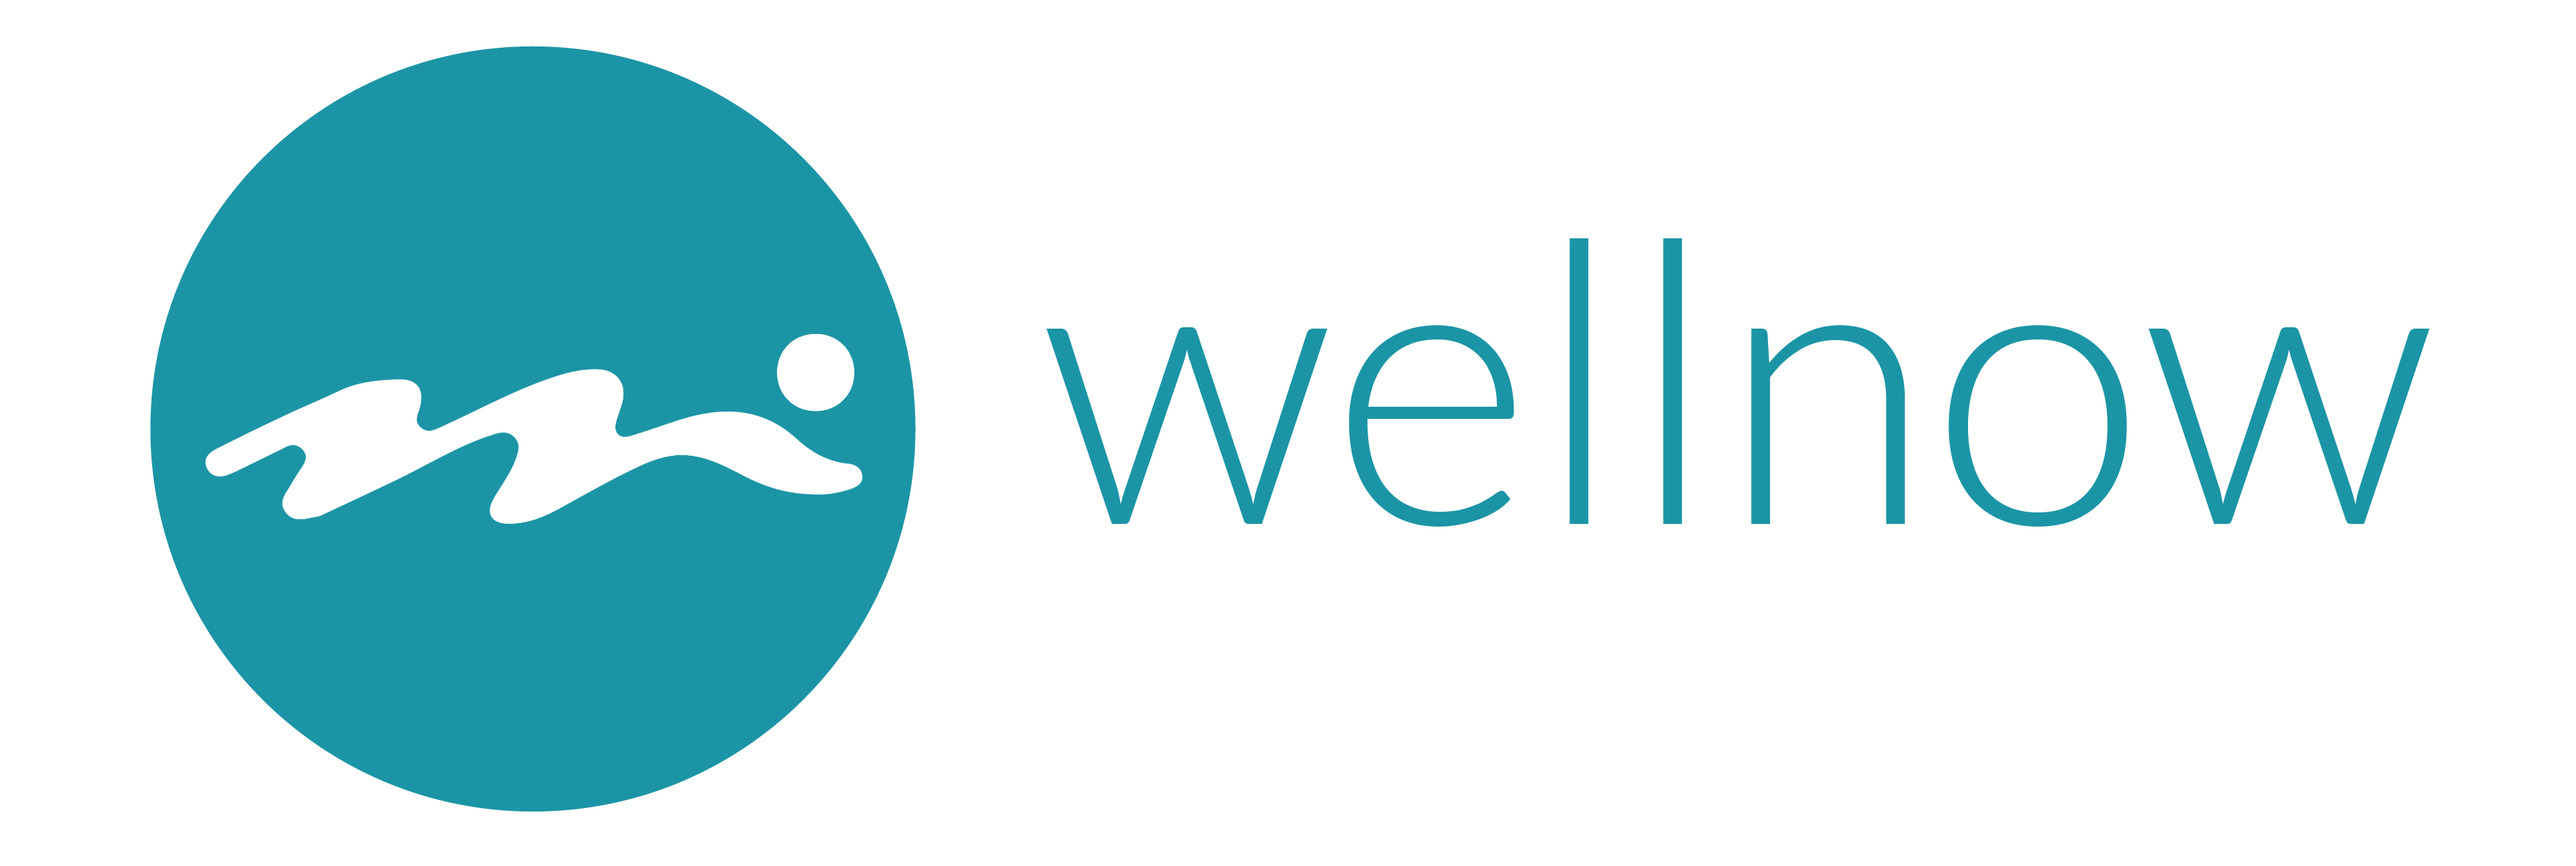 wellnow logo horizontal